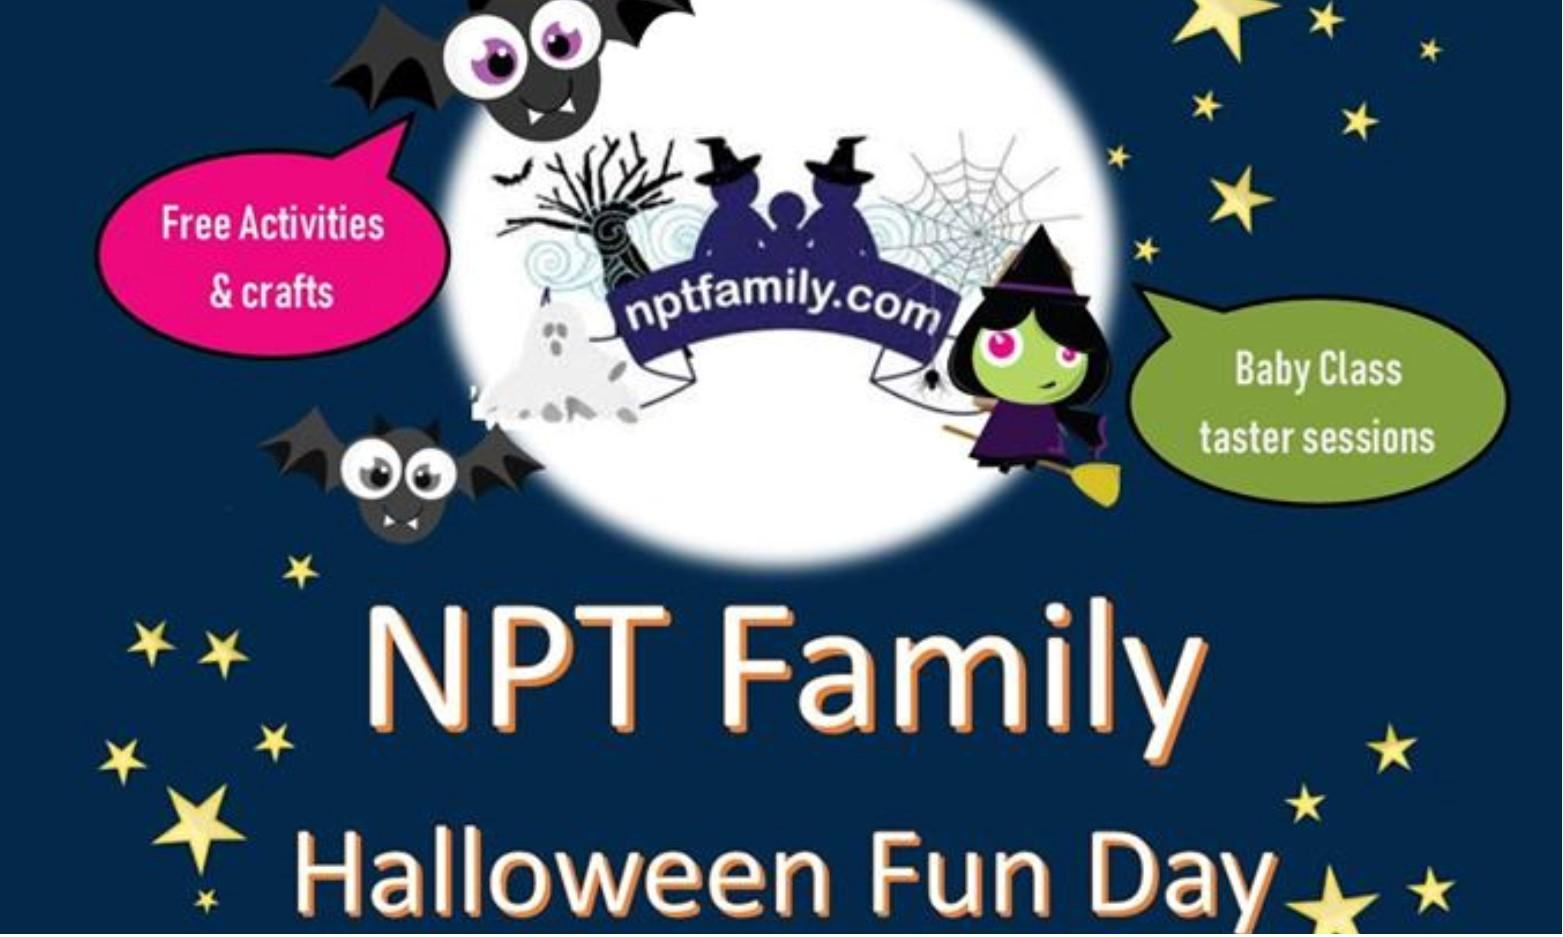 Free NPT Family Halloween Fun Day